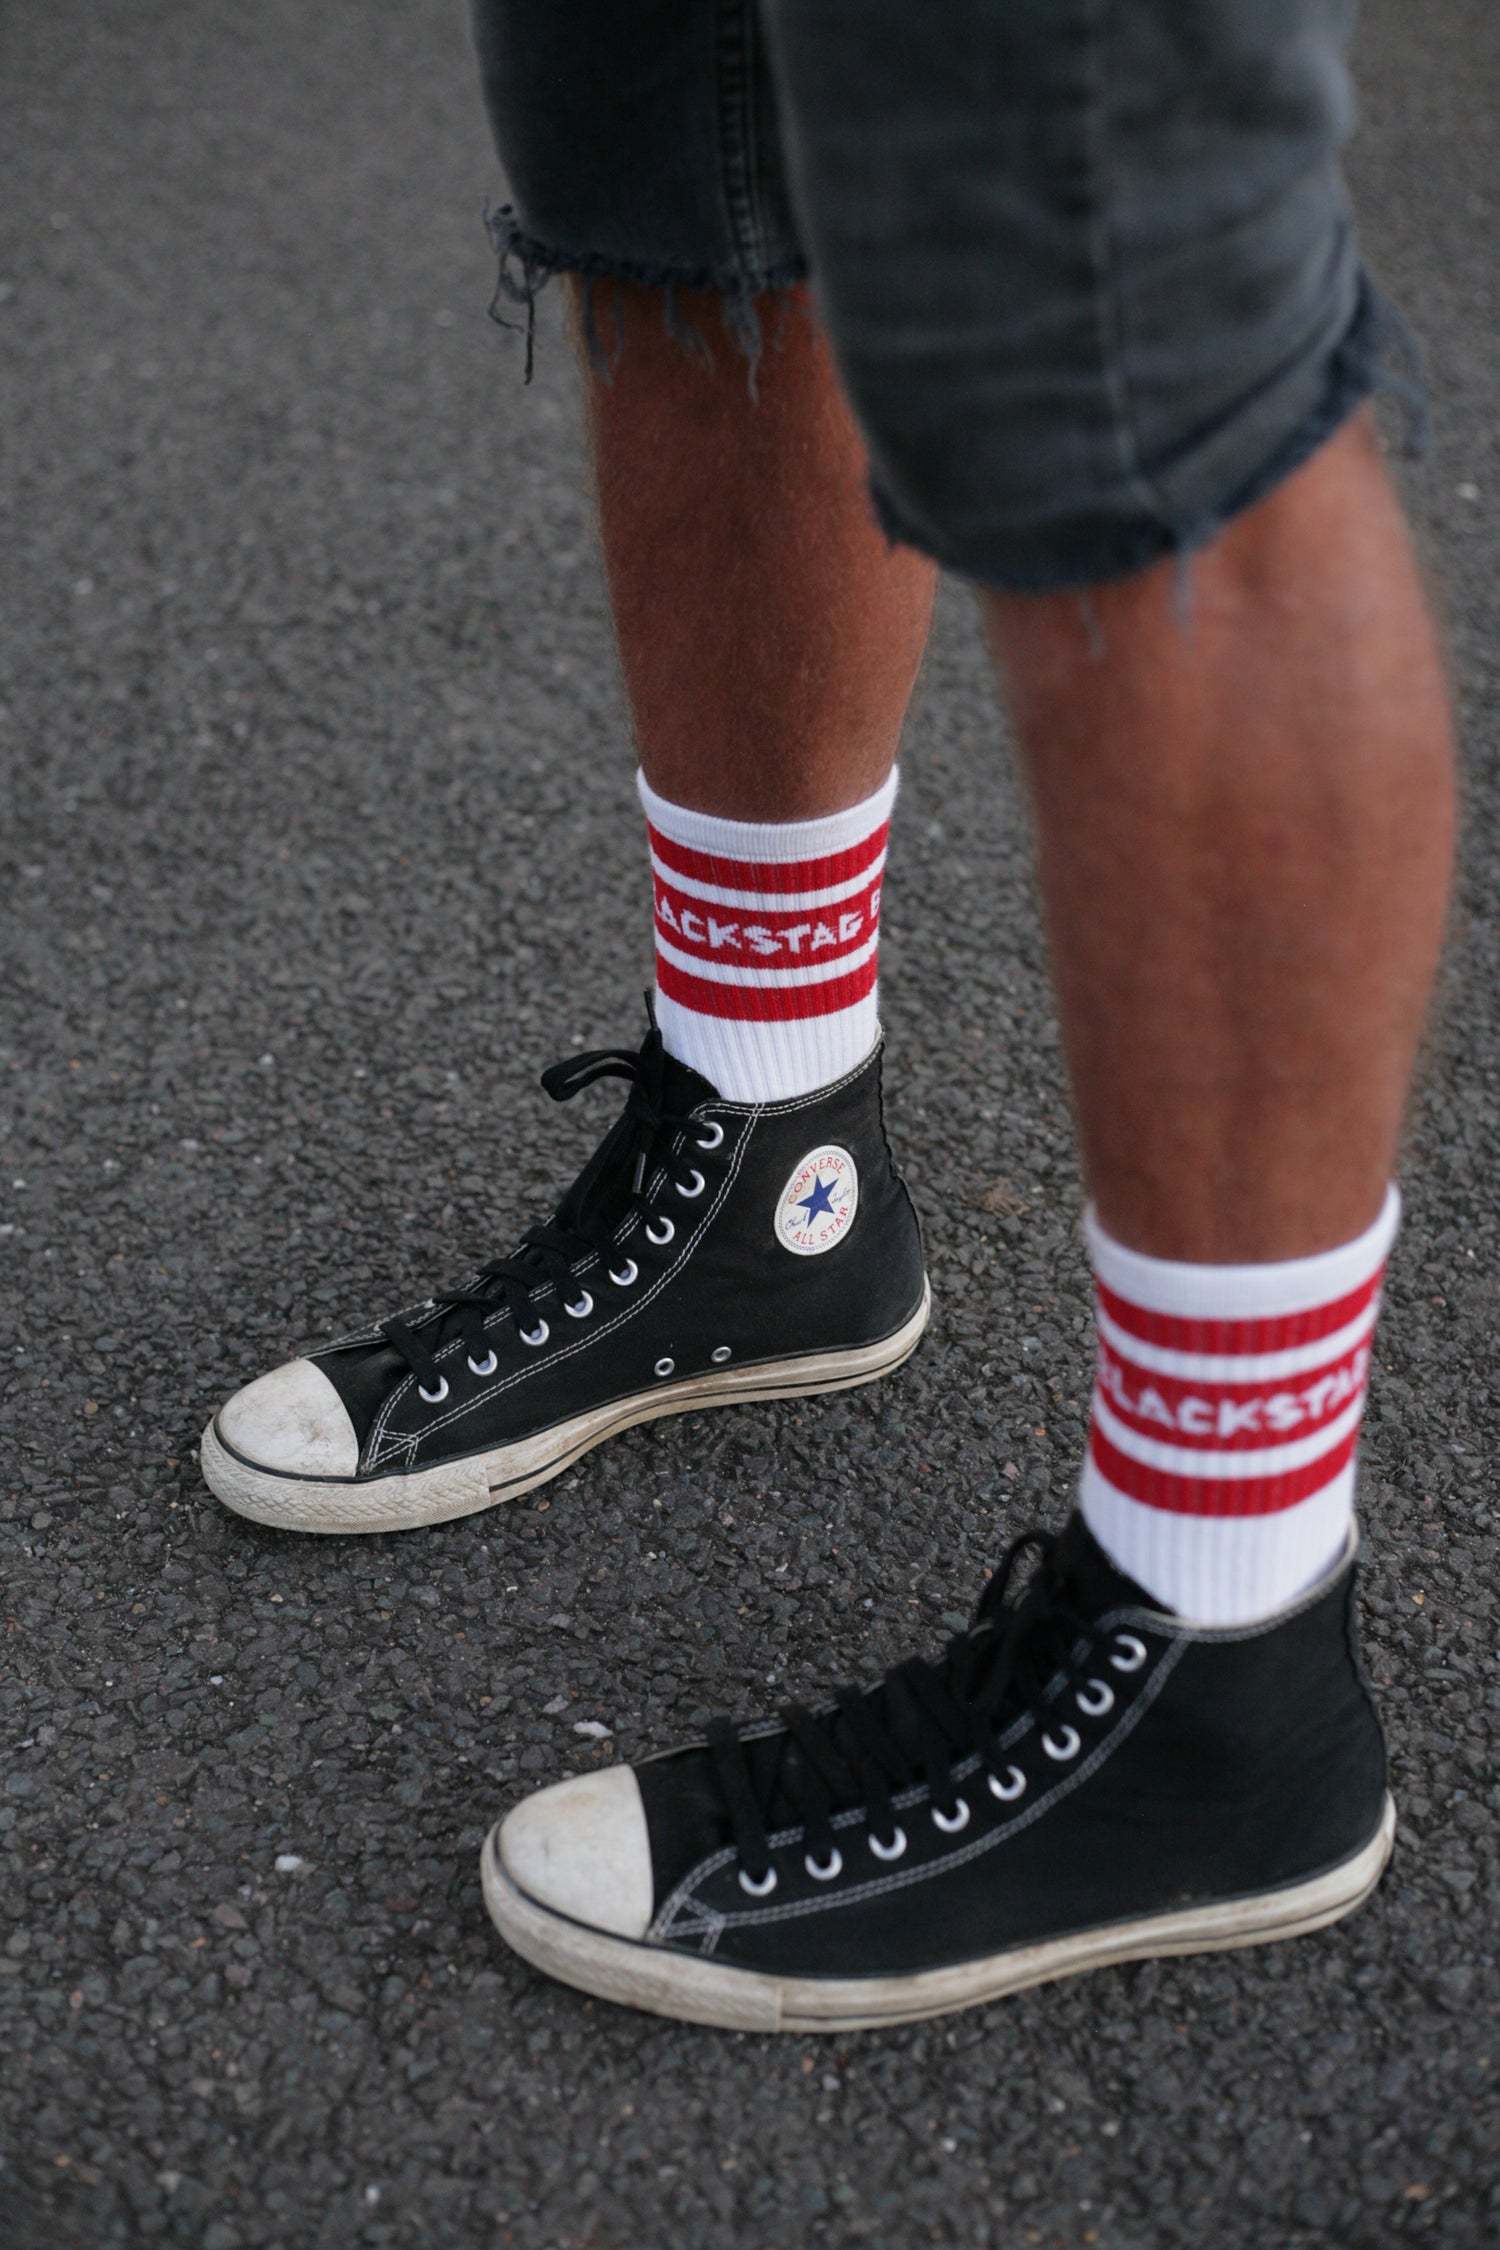 Image of Blackstag tube socks